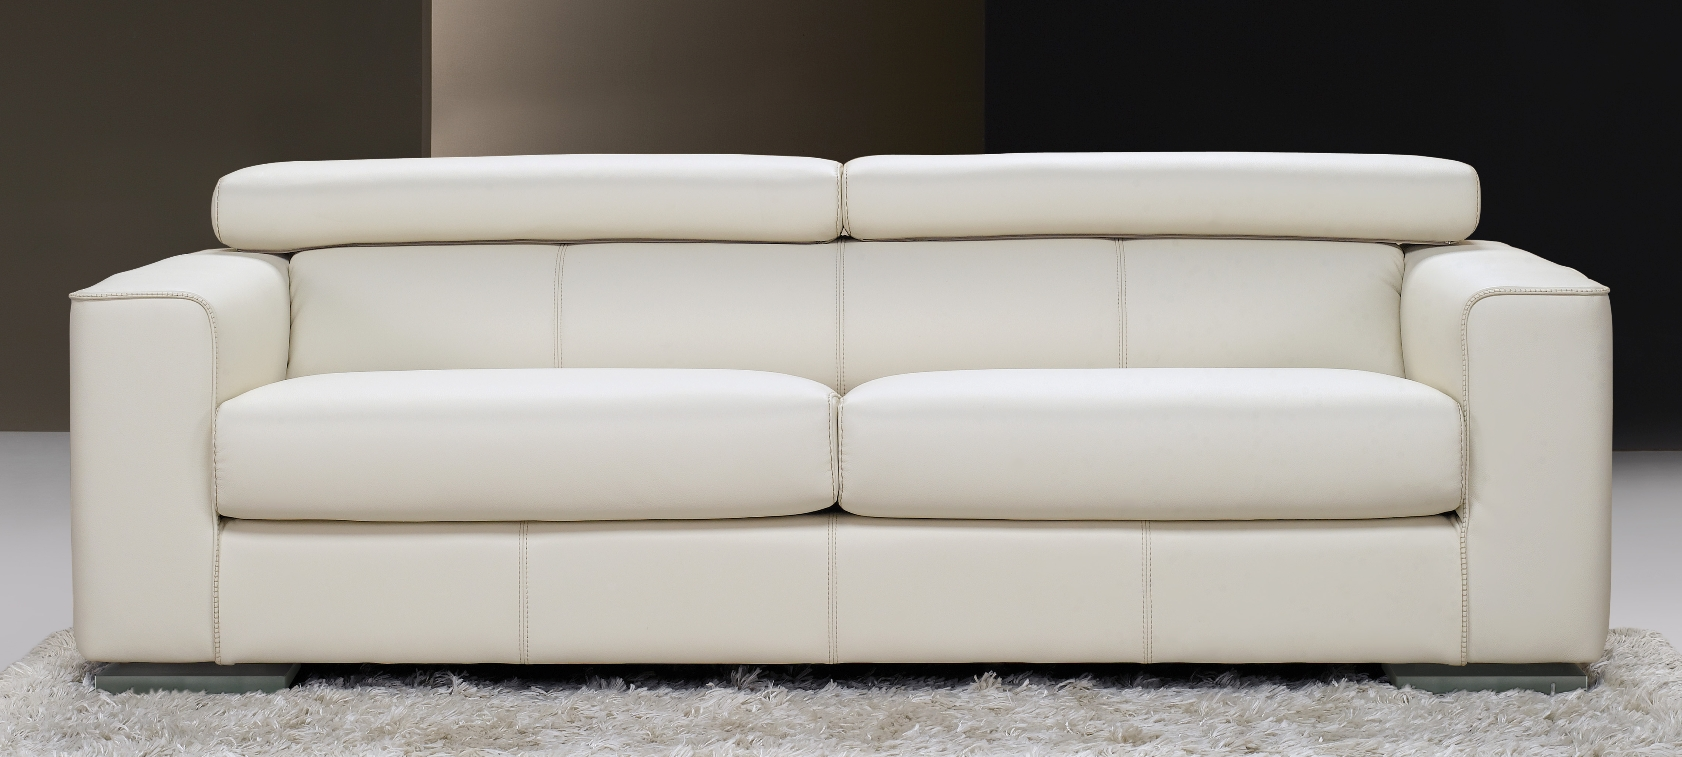 Luxurious leather sofas luxury leather designer furniture for Modern luxury furniture